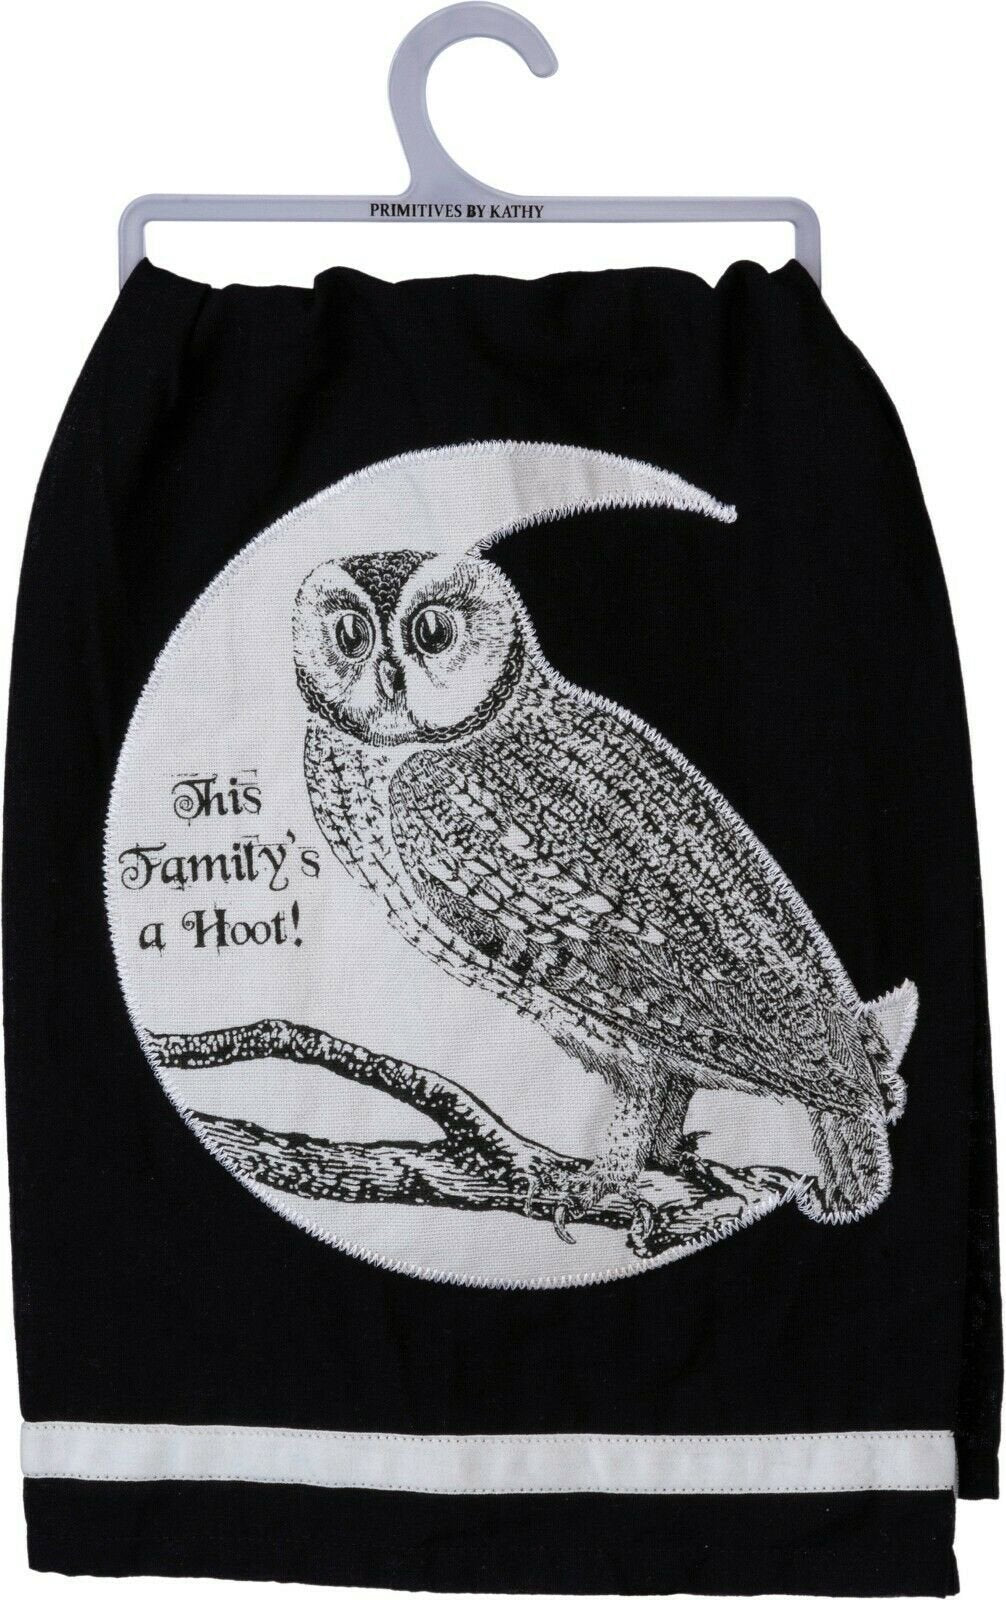 Primitives by Kathy Halloween Owl This Family is a Hoot Black Kitchen Dish Towel - Piglet's Closet